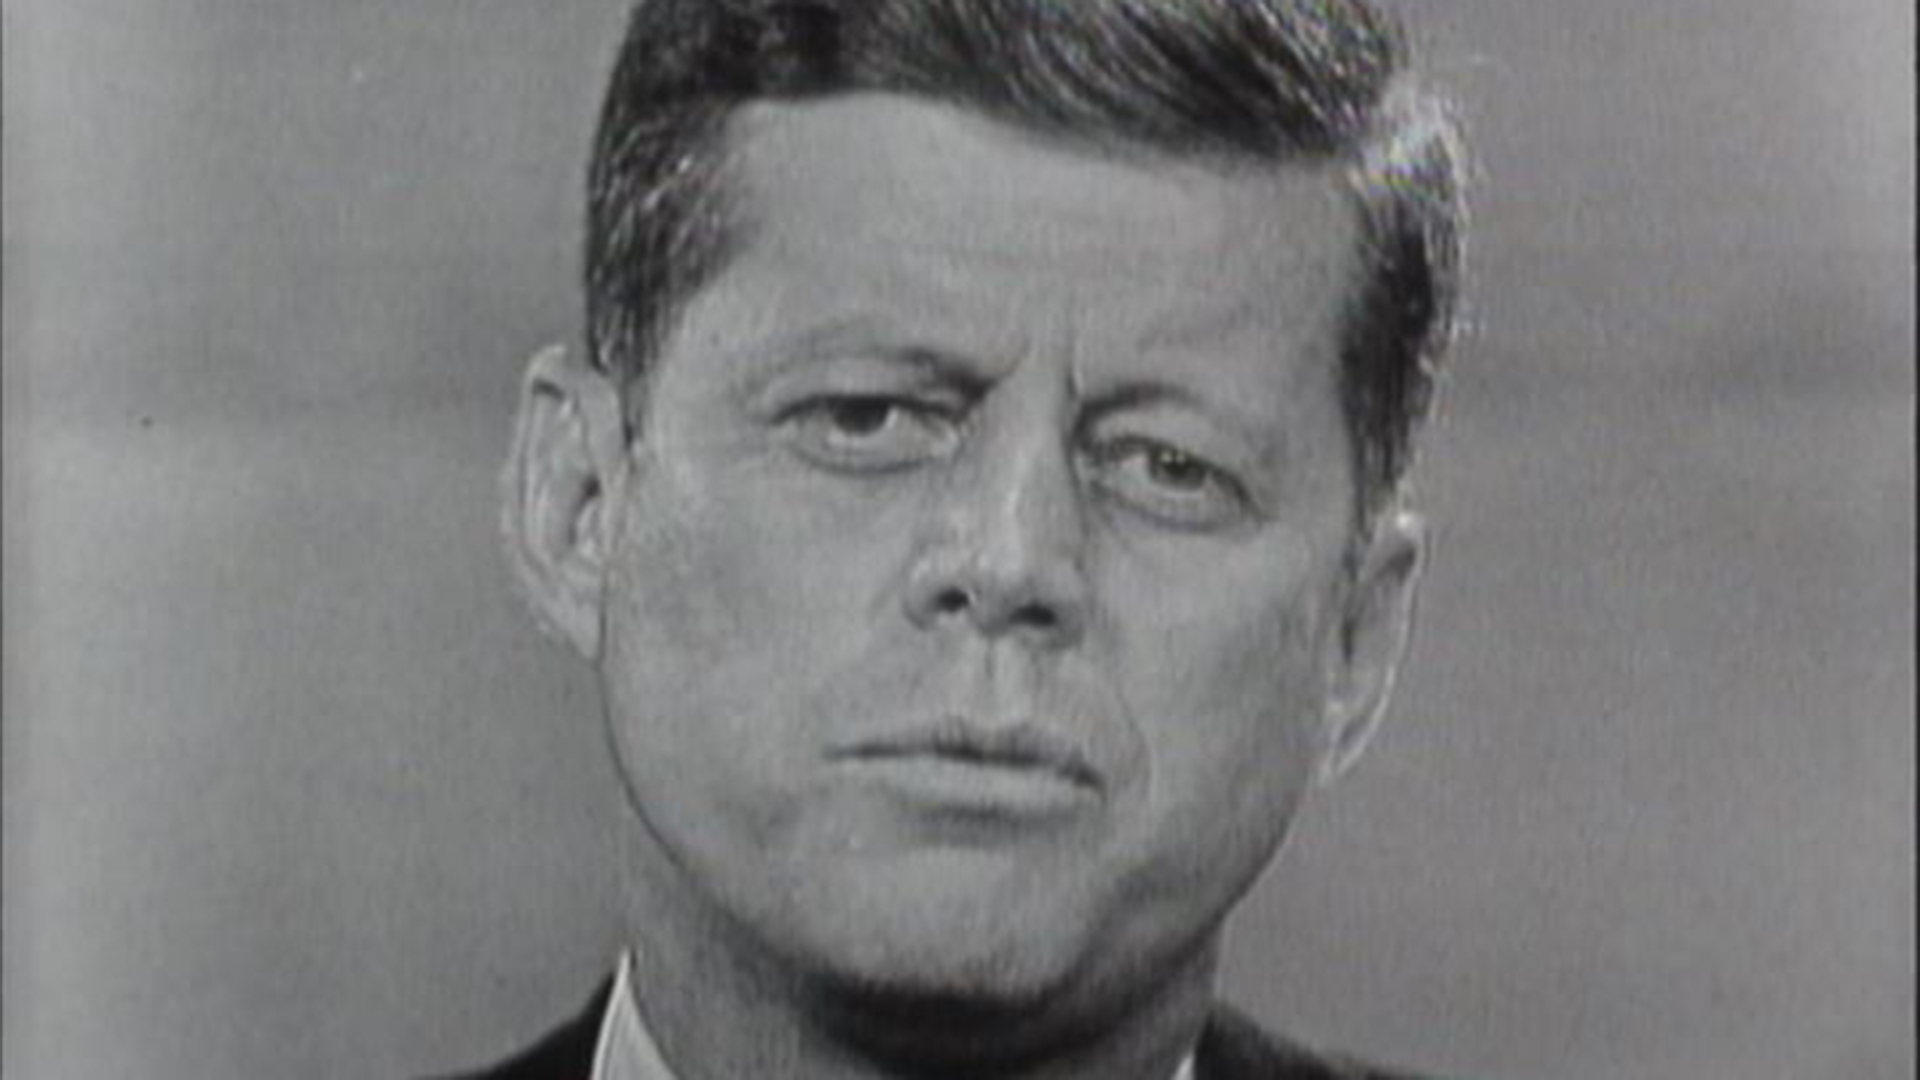 kennedy vs nxon An essay in the left-leaning journal the nation outlines kennedy's favorable attitudes toward nixon, and the ways in which jfk distanced himself from the more liberal wing of his party.